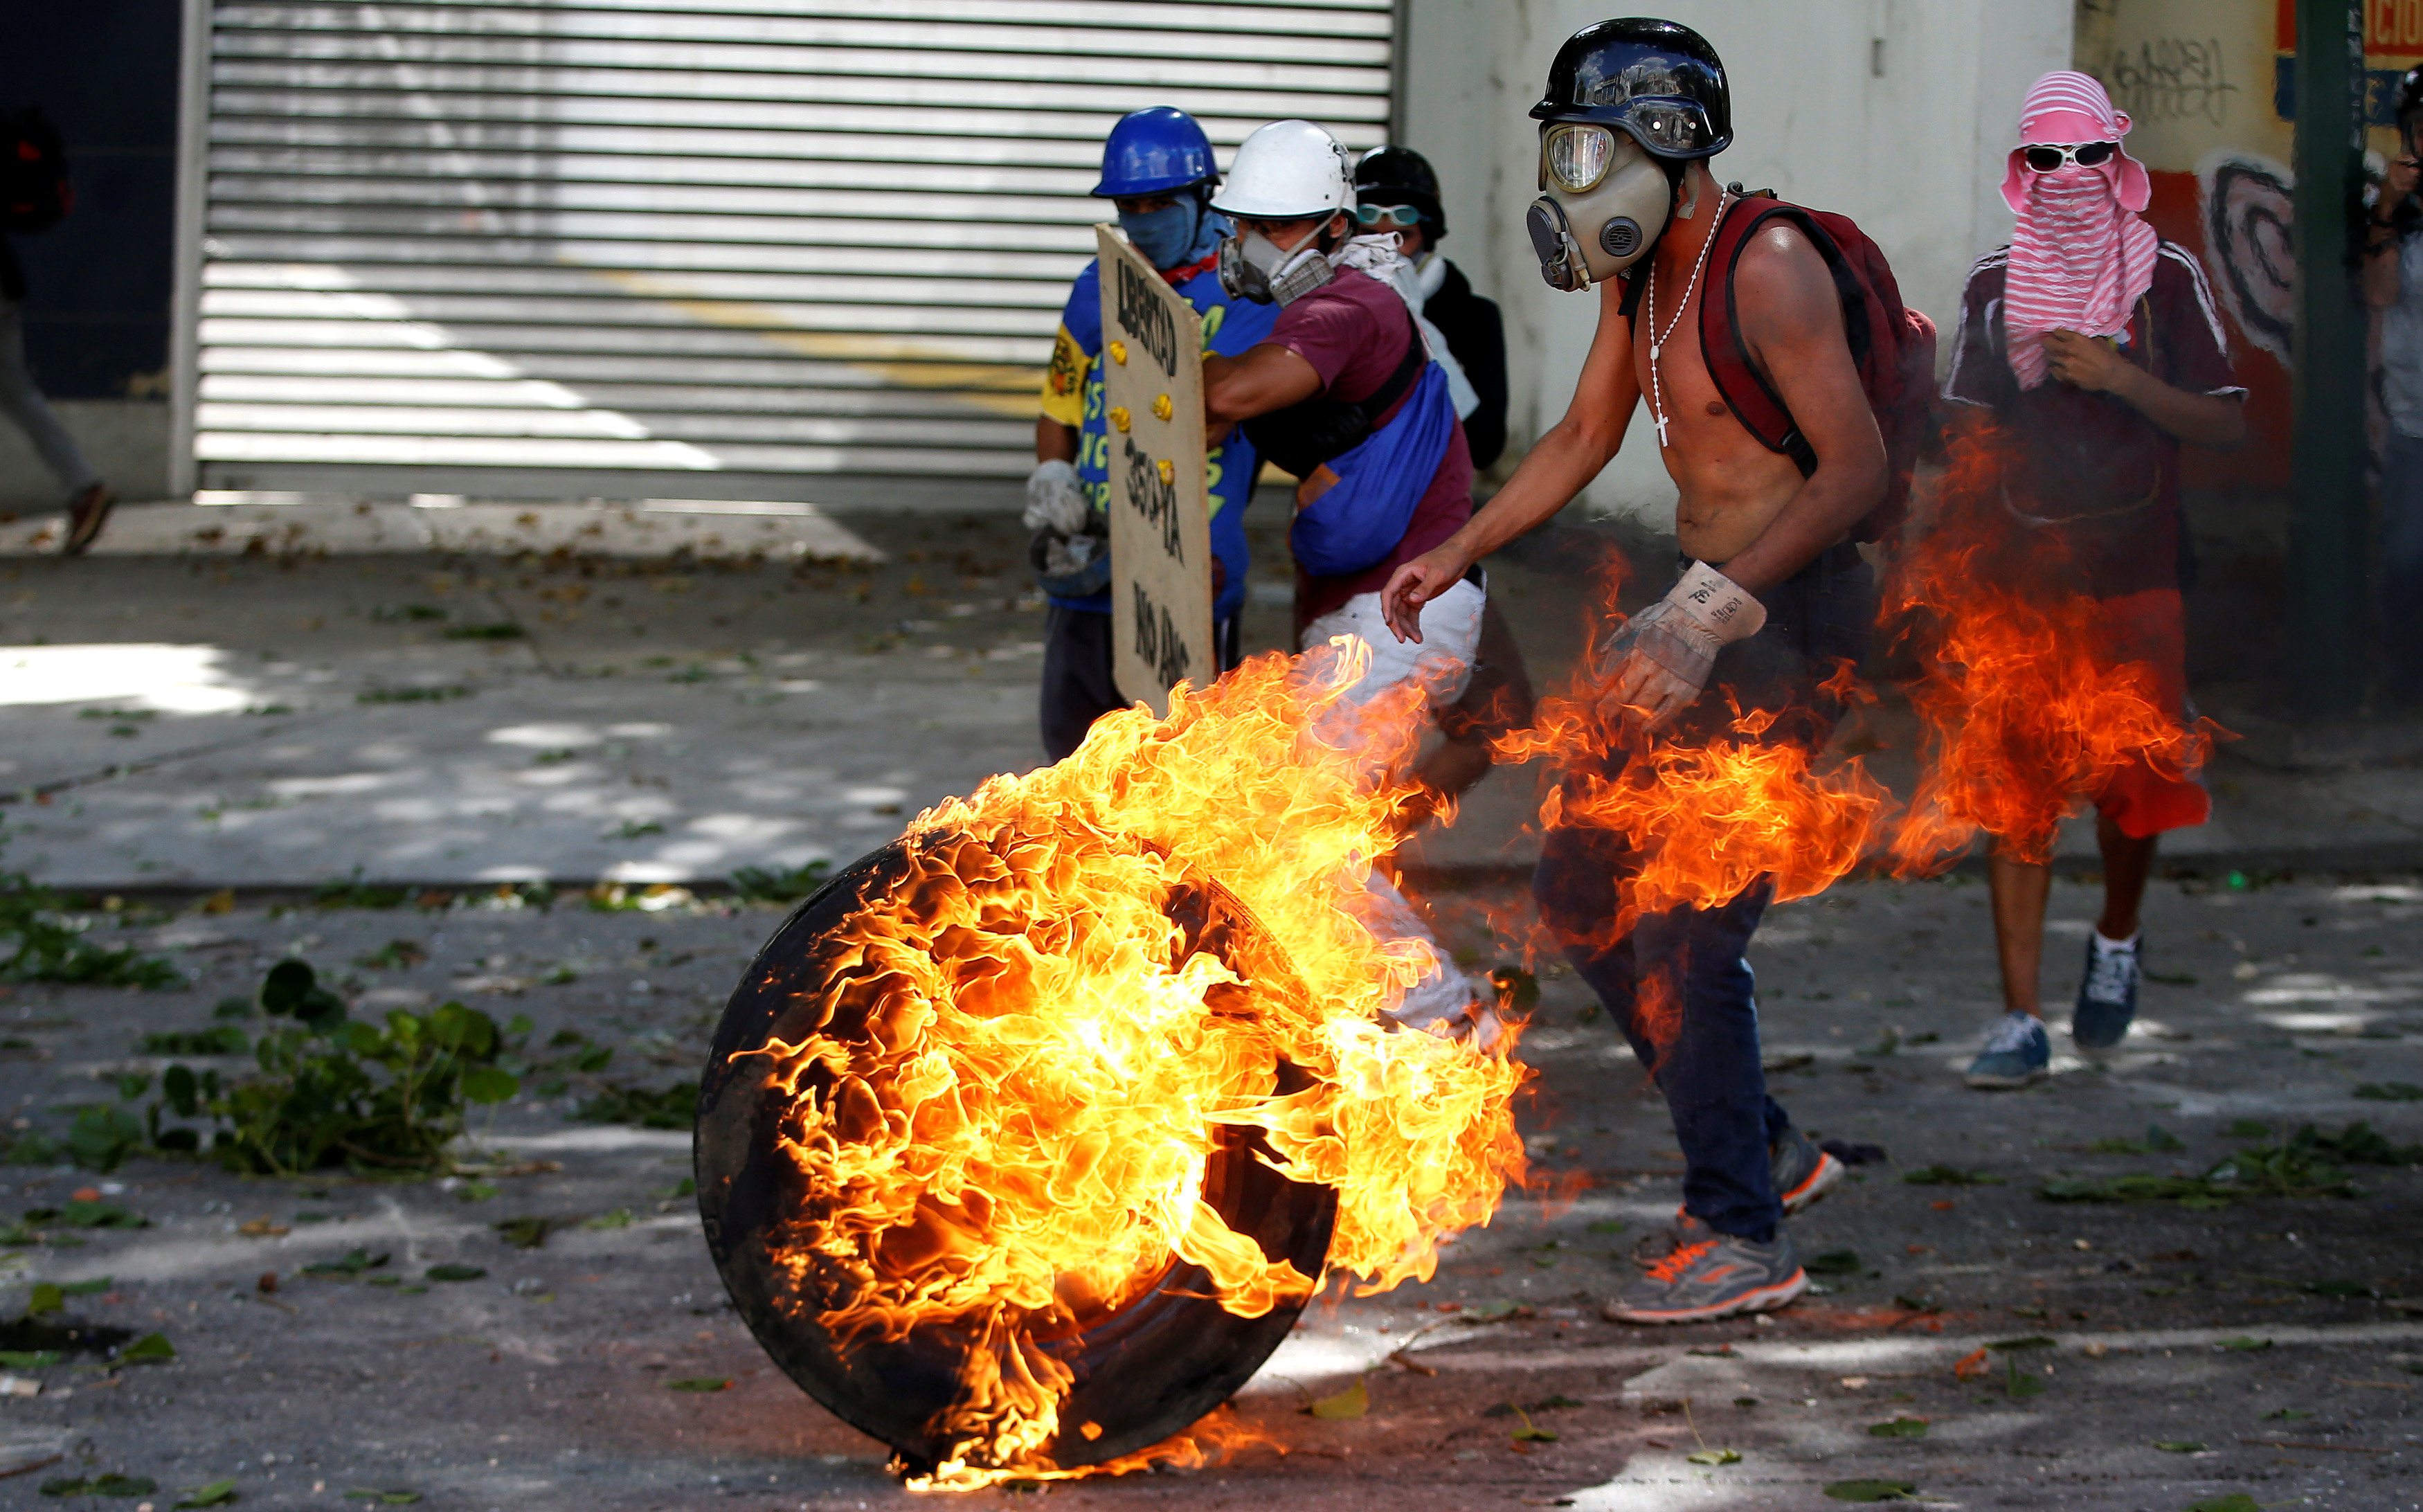 Demonstrators use a tire on fire to block a street at a rally during a strike called to protest against Venezuelan President Nicolas Maduro's government in Caracas, Venezuela July 26, 2017. REUTERS/Andres Martinez Casares